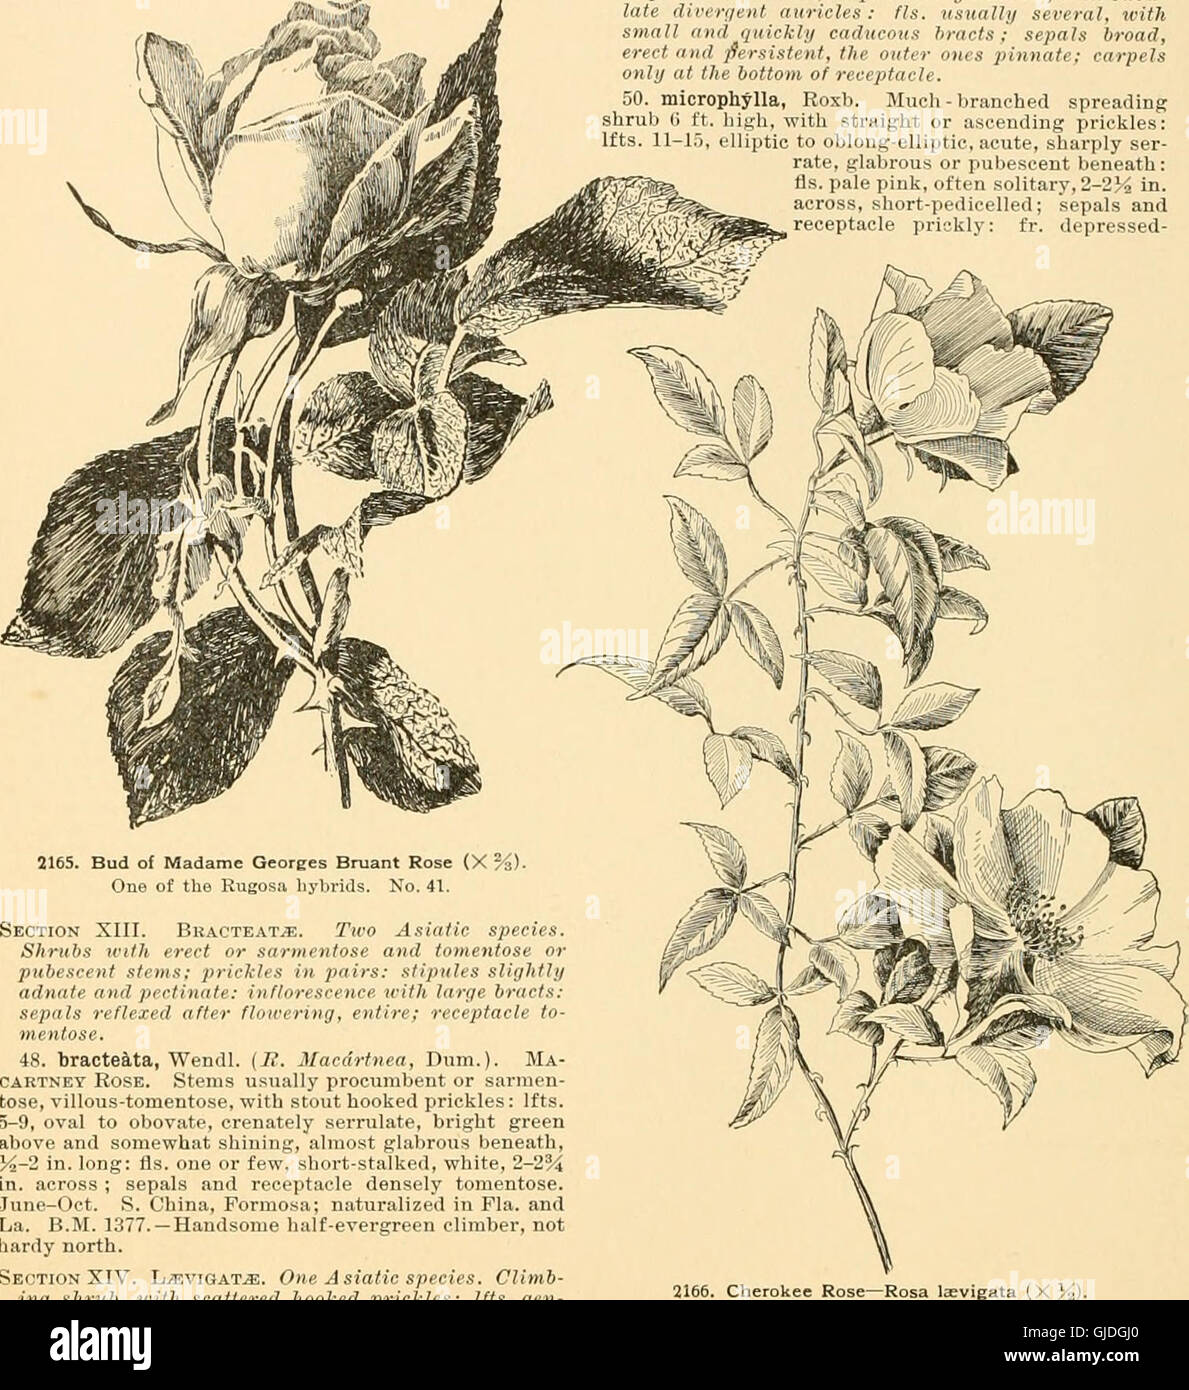 Cyclopedia of American horticulture - comprising suggestions for cultivation of horticultural plants, descriptions Stock Photo